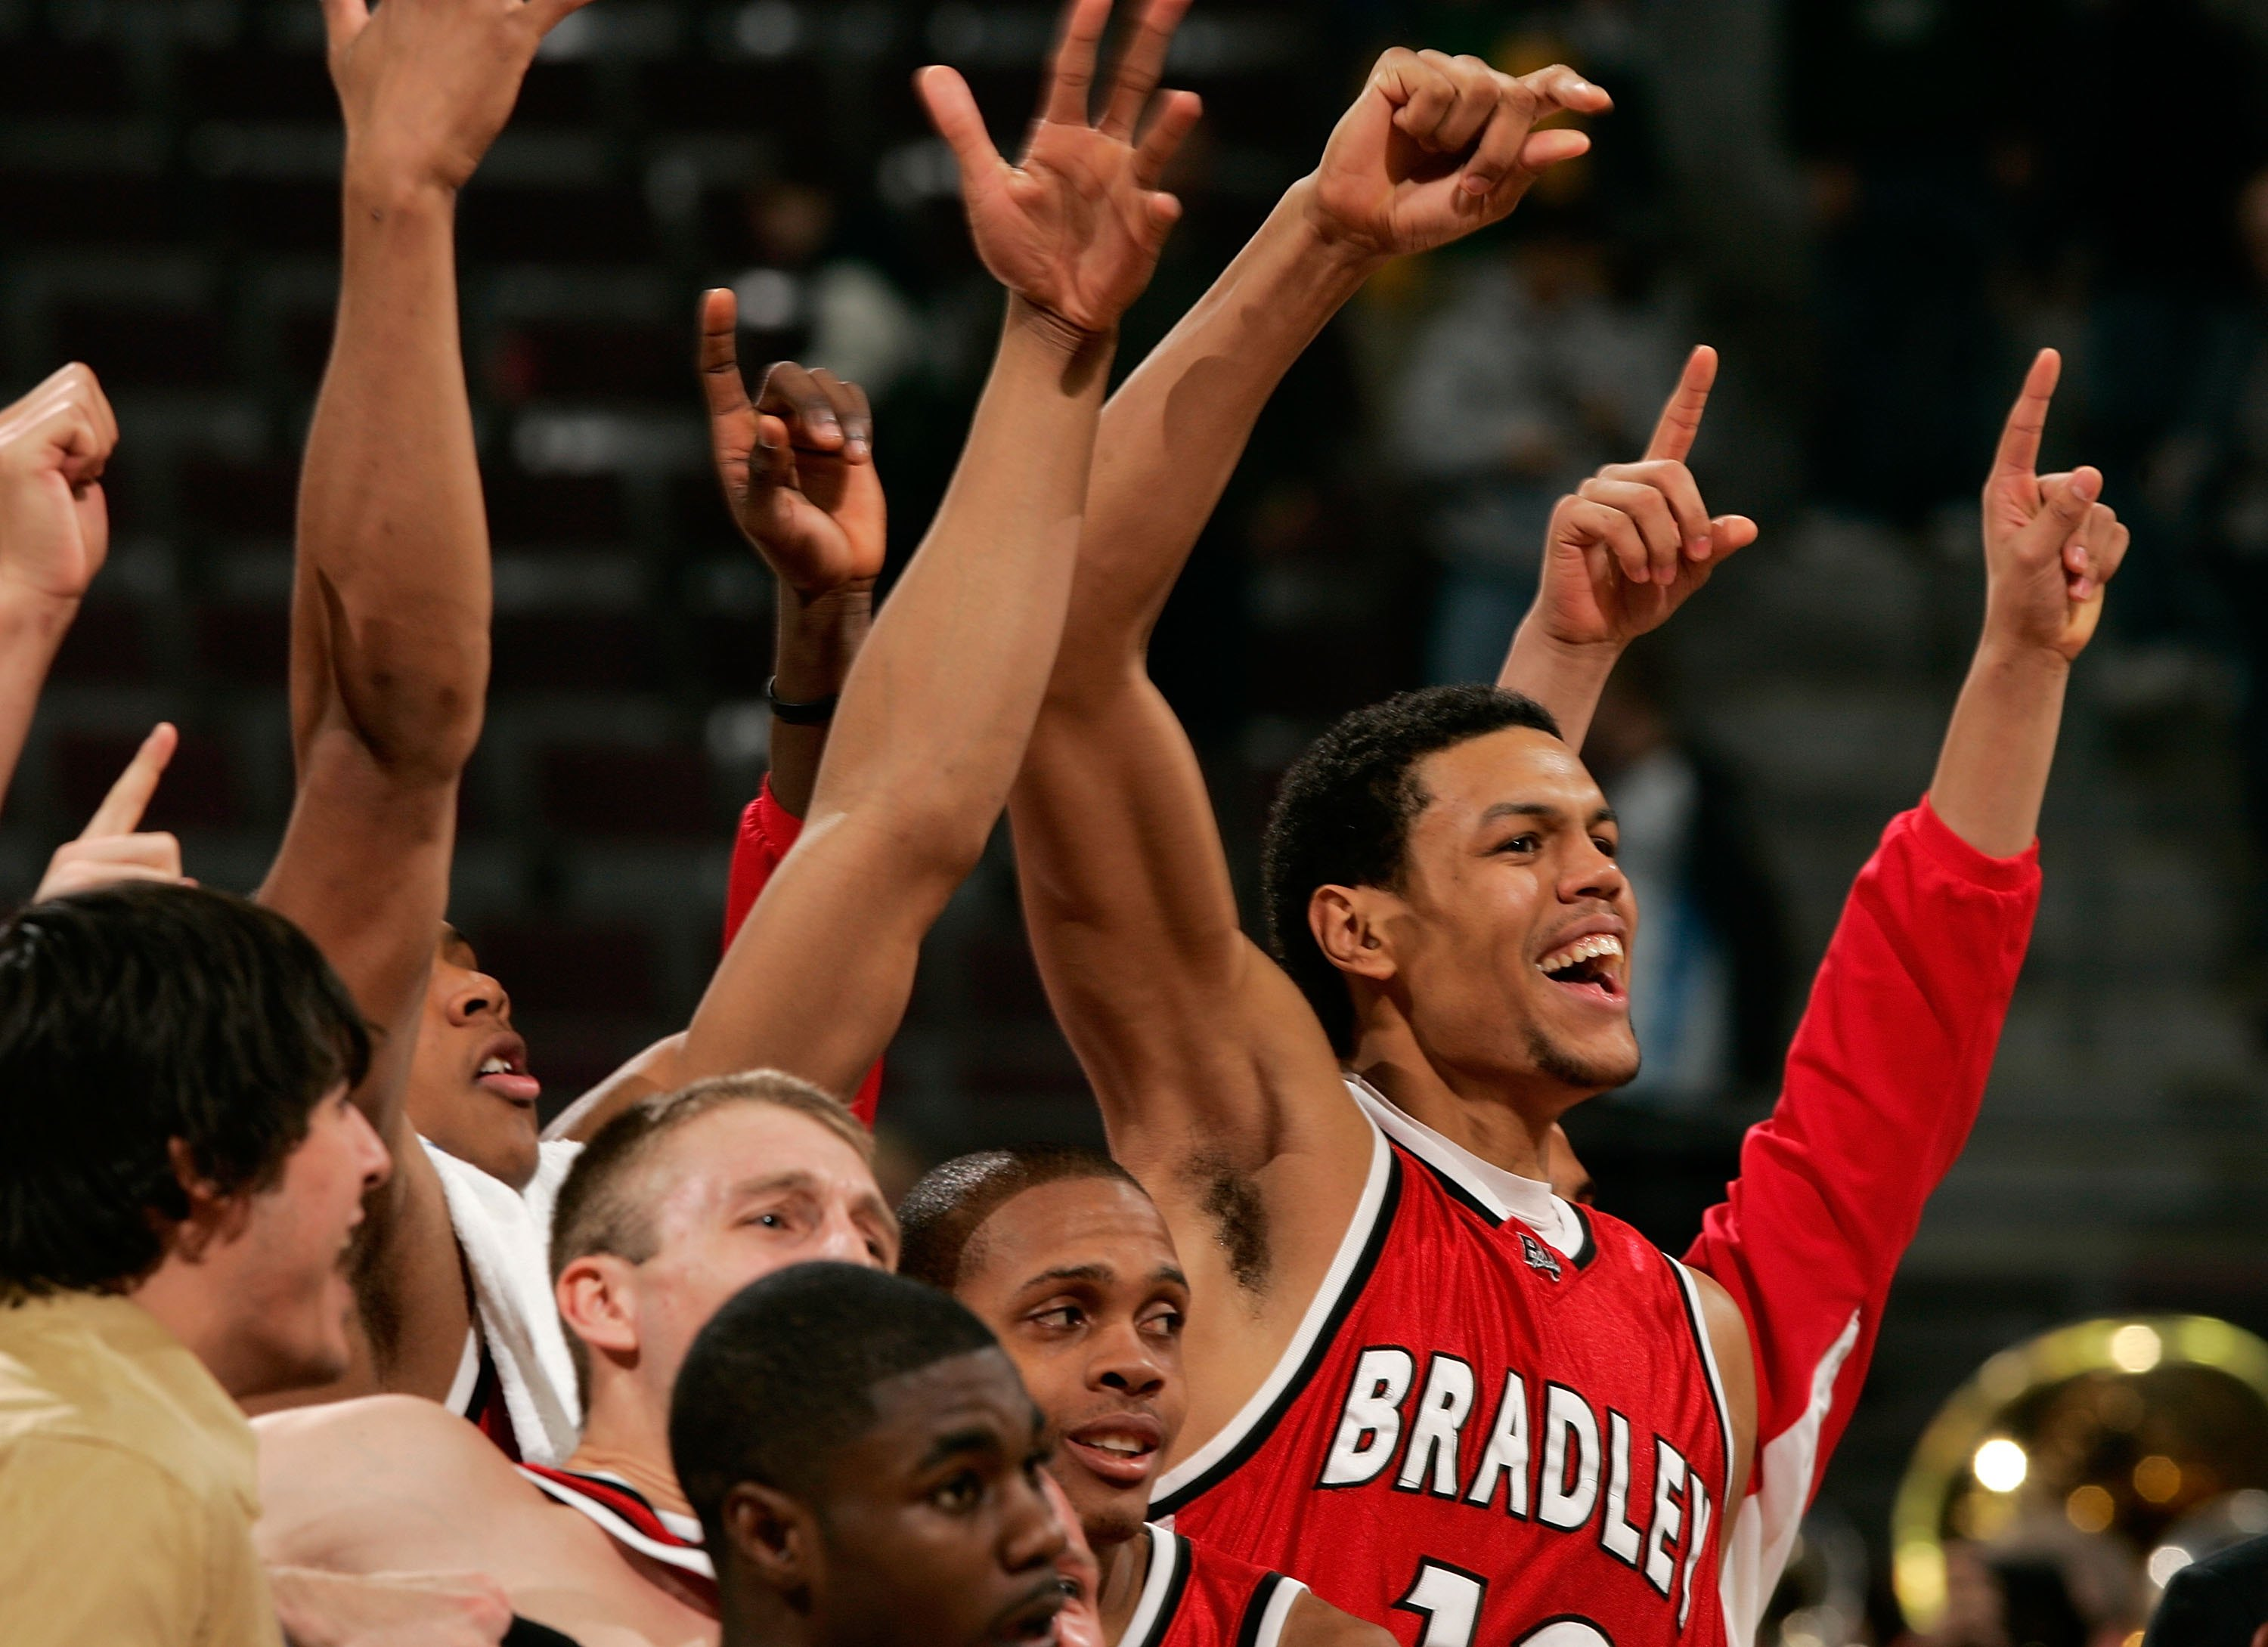 AUBURN HILLS, MI - MARCH 17:  Patrick O'Bryant #13 of the Bradley Braves and teammates celebrate the 77-73 upset win over the Kansas Jayhawks during the First Round of the 2006 NCAA Men's Basketball Tournament at The Palace of Auburn Hills on March 17, 20